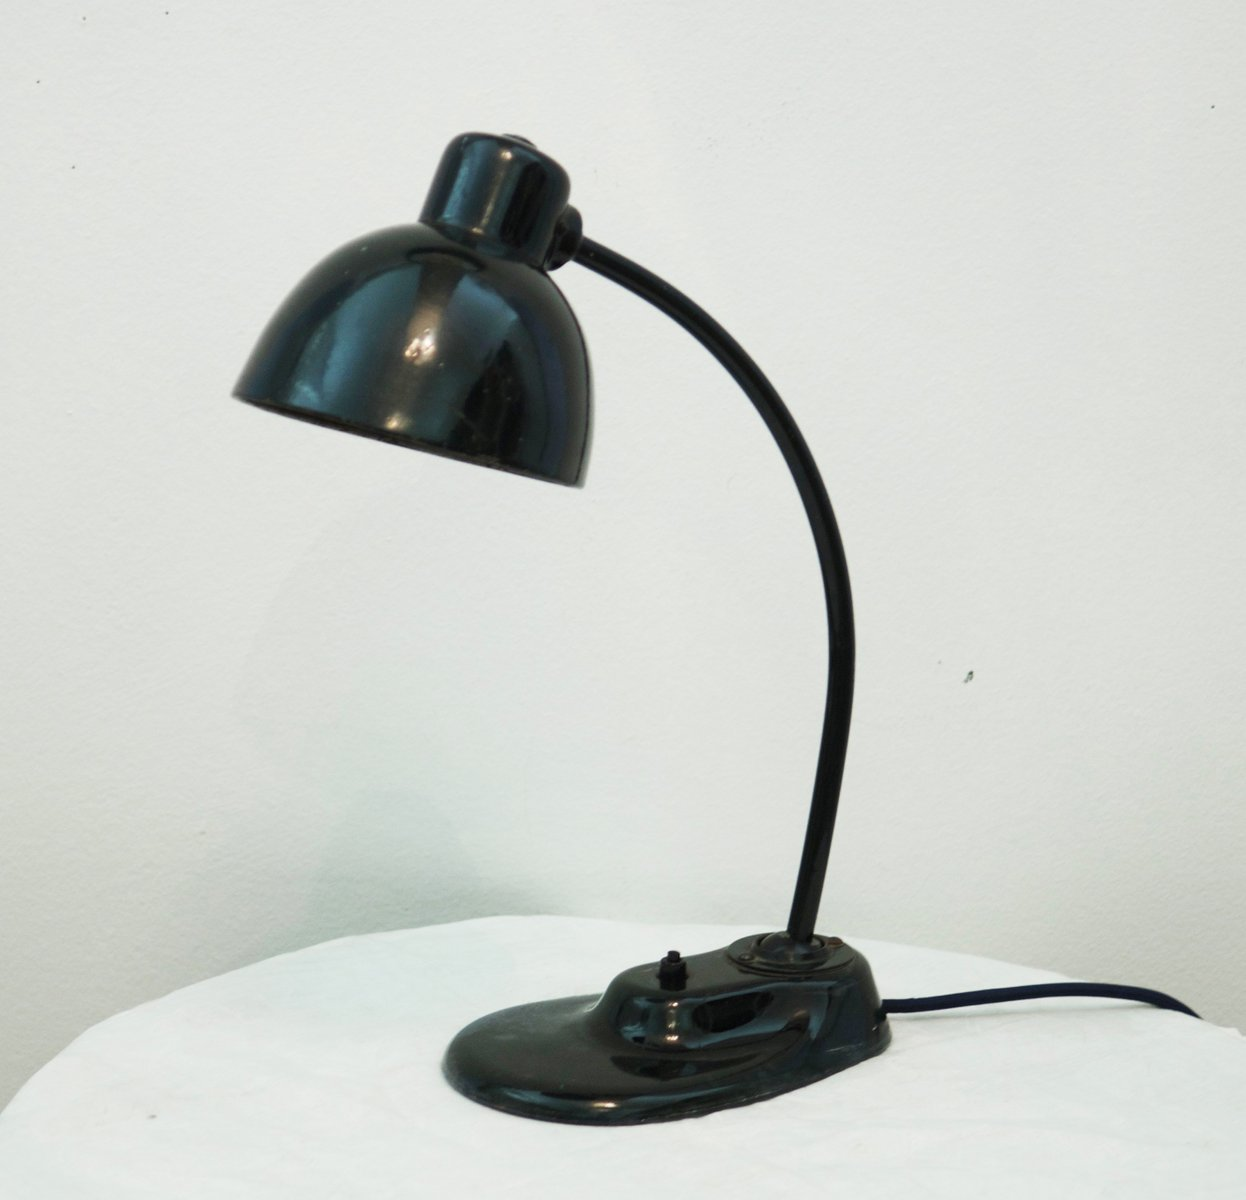 bauhaus desk lamp by marianne brandt for kandem leuchte. Black Bedroom Furniture Sets. Home Design Ideas